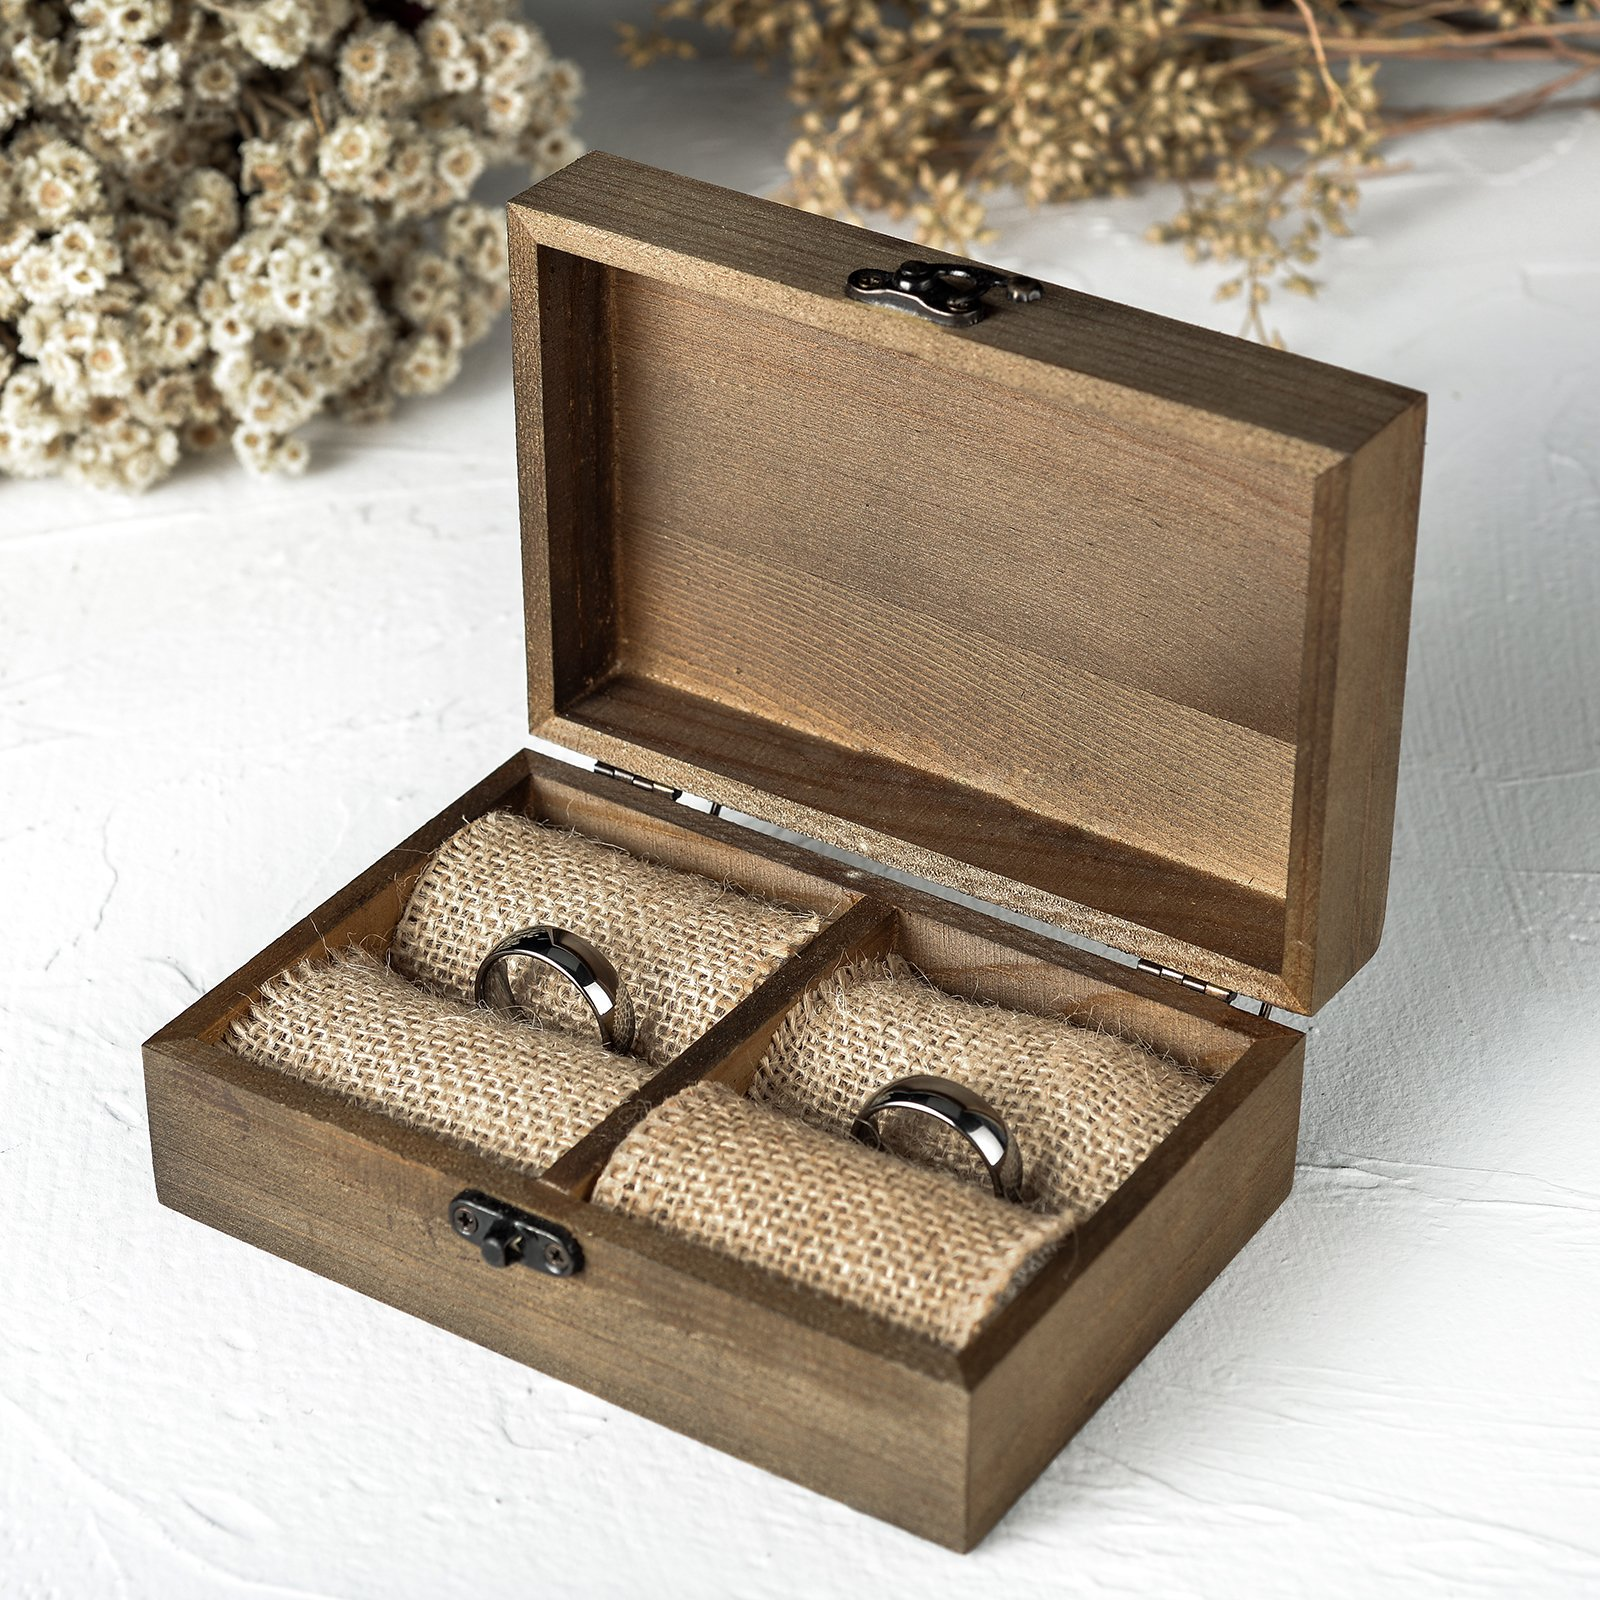 AW Wood Ring Box Rustic Ring Bearer Holder Decorative Wedding Engagement Jewelry Boxes 5.9'' x 3.9'' x 2.17''